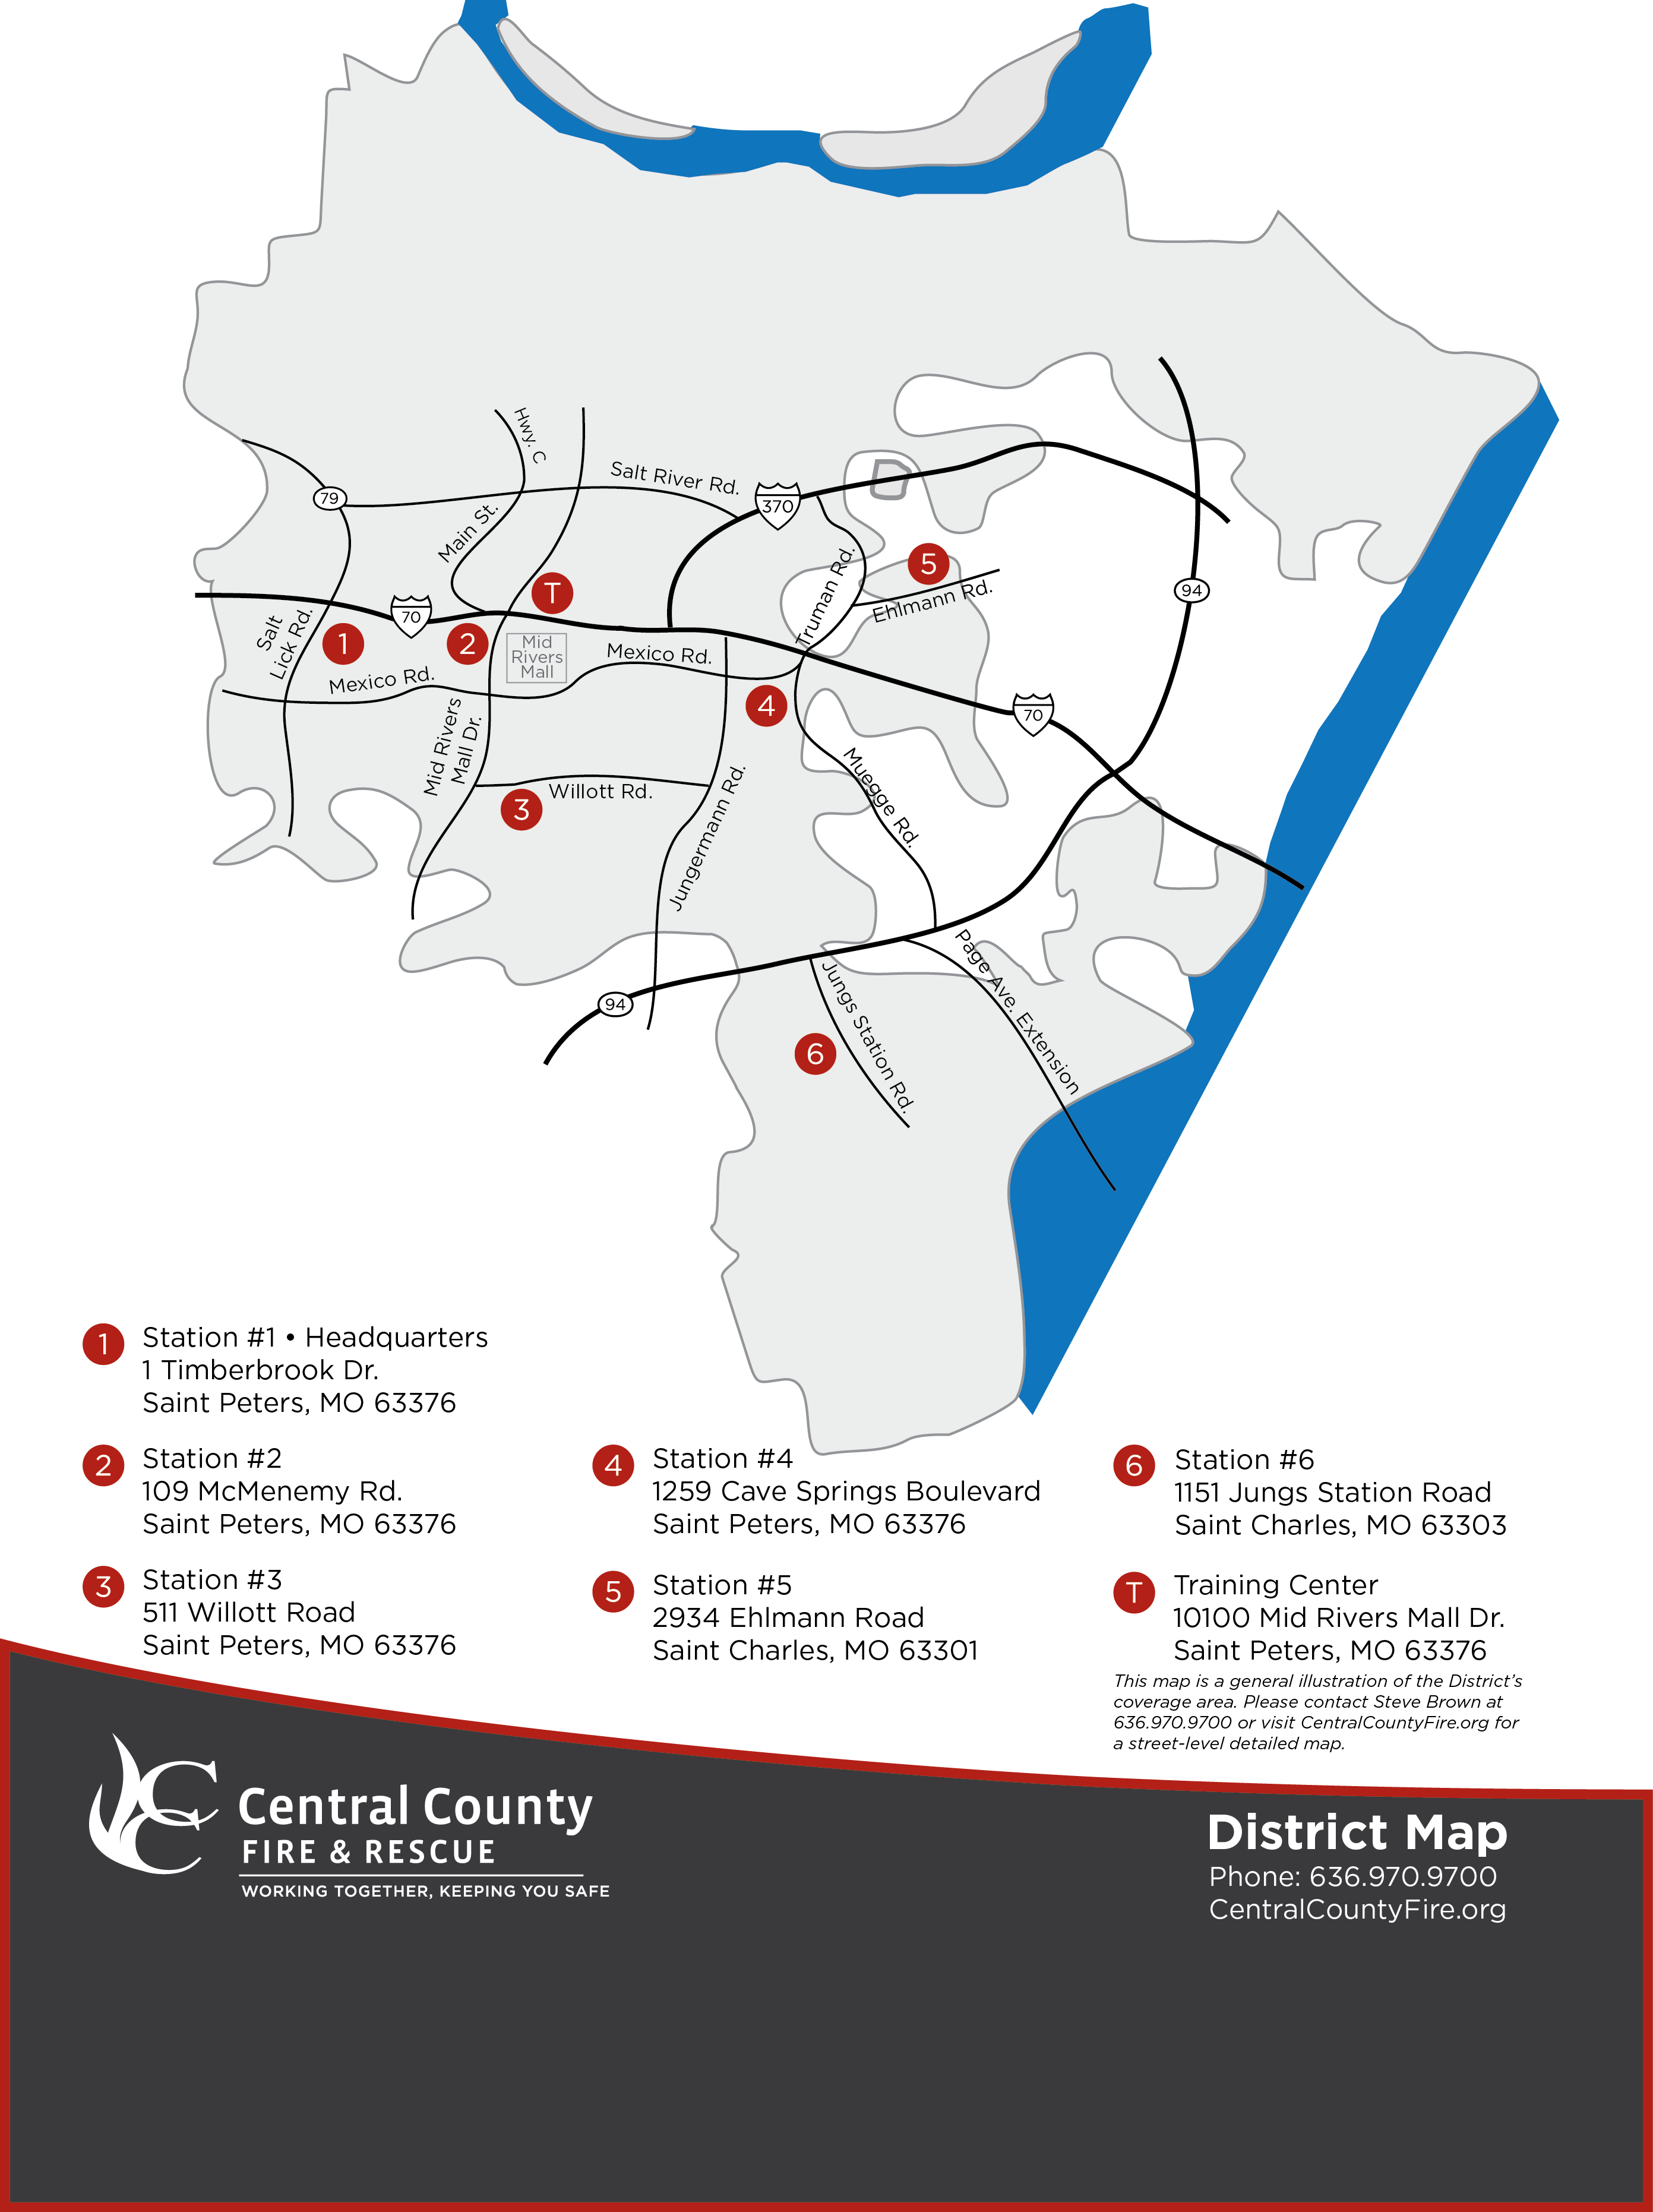 Central County Fire and Rescue district boundary map